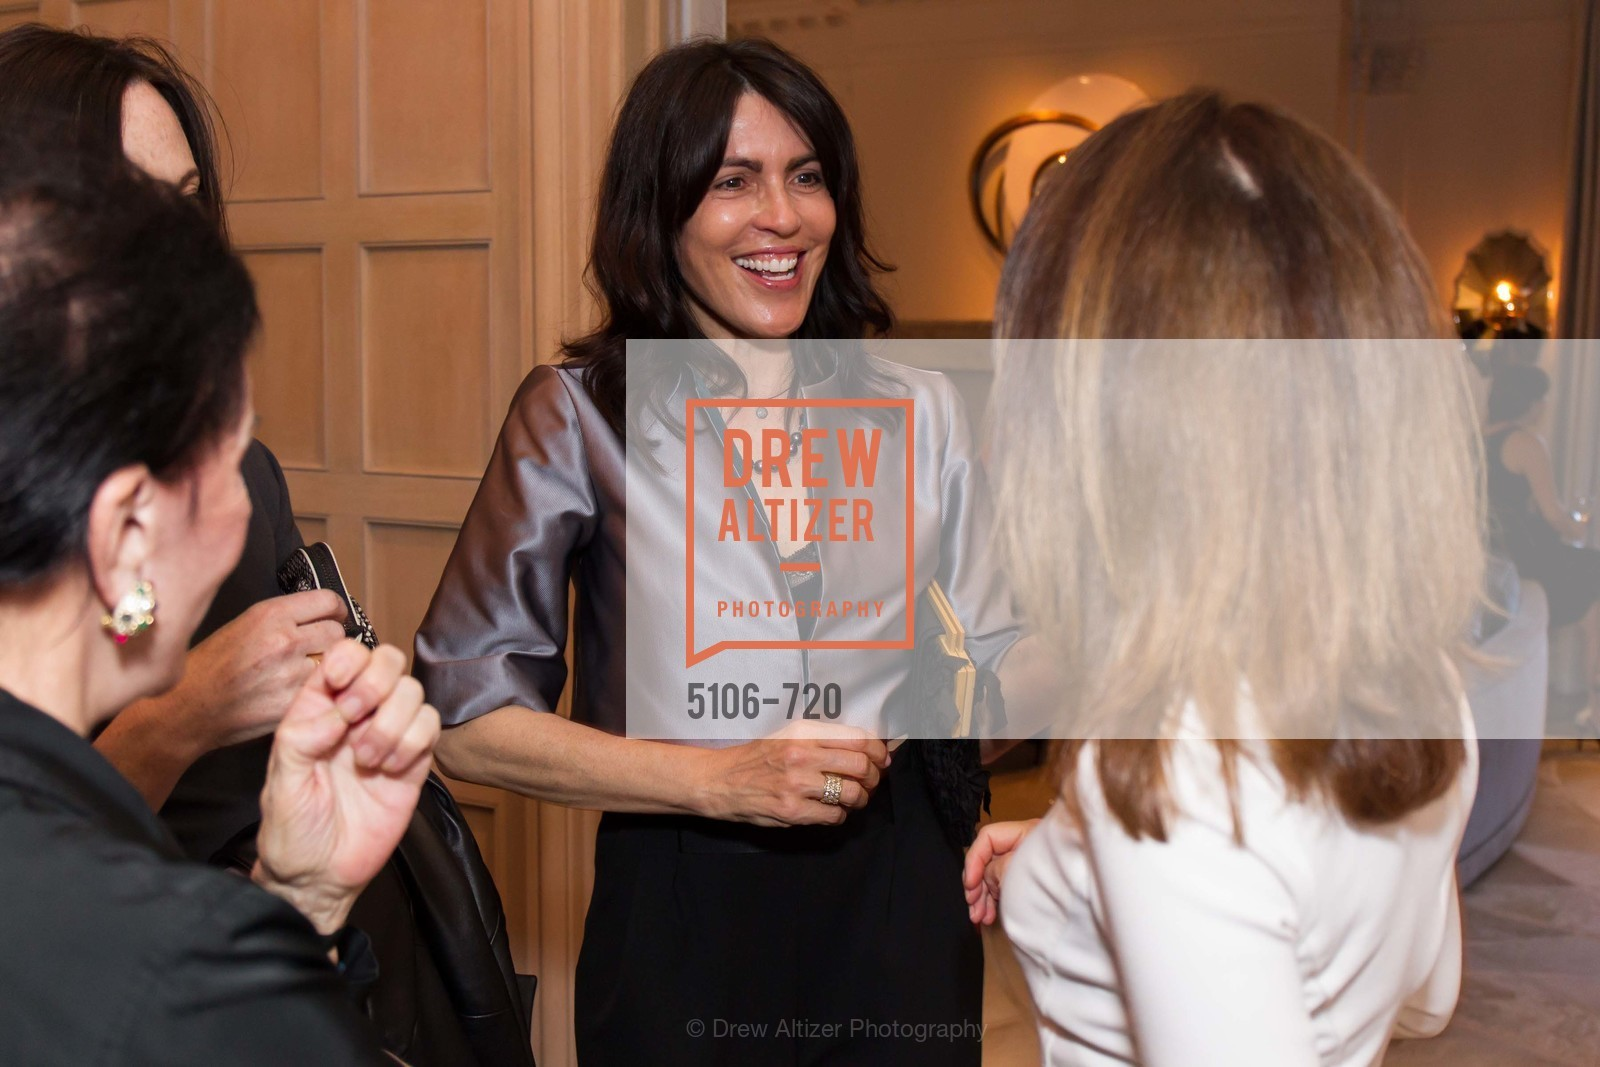 Alina DeAlbergaria, C MAGAZINE Editors Cocktail Party, US, May 13th, 2015,Drew Altizer, Drew Altizer Photography, full-service agency, private events, San Francisco photographer, photographer california